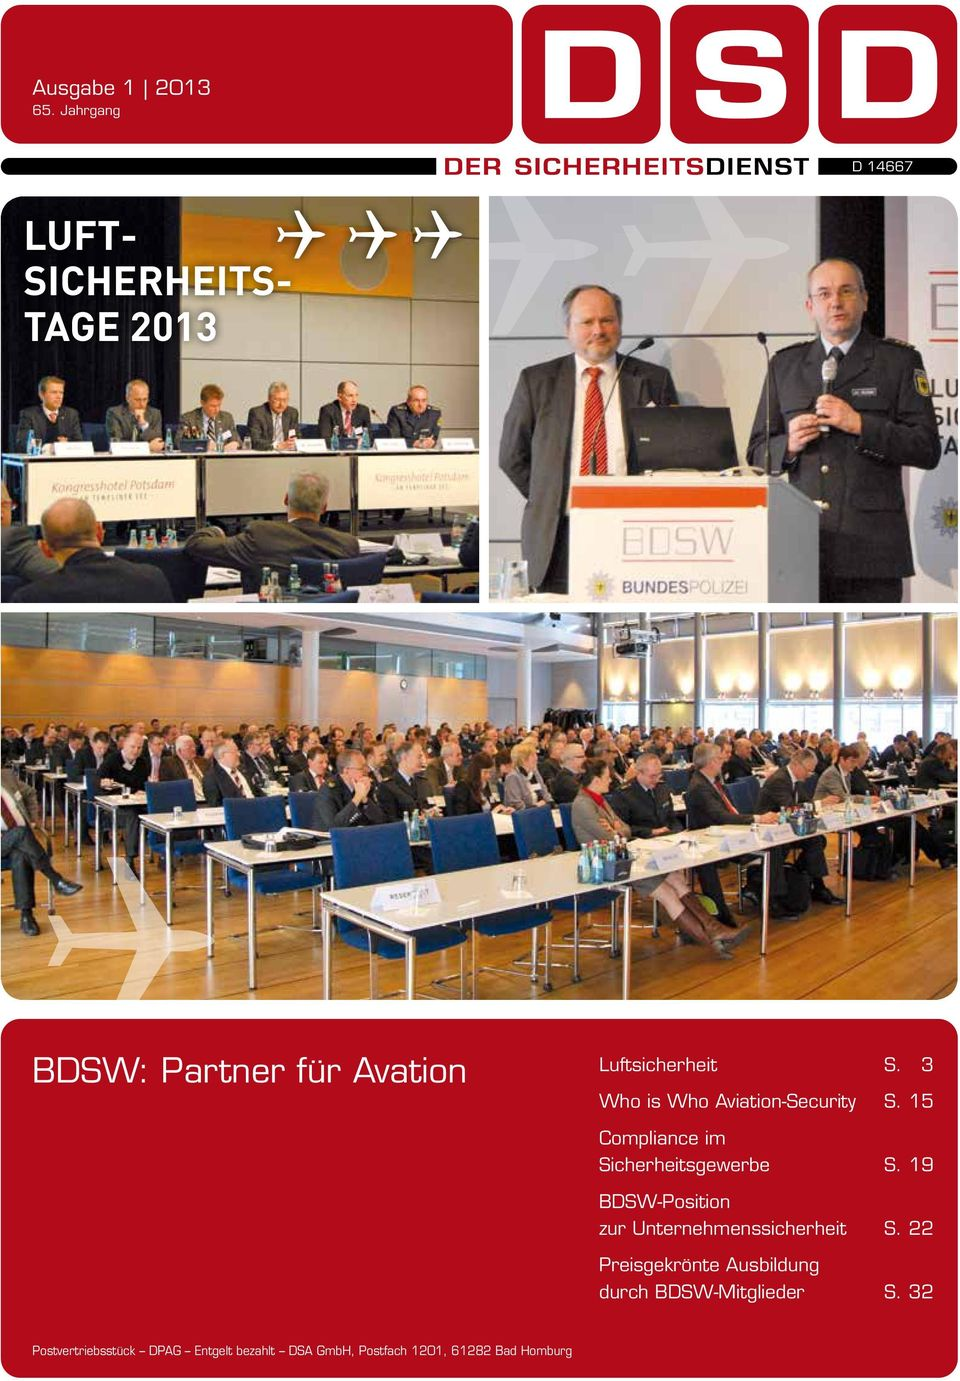 3 Who is Who Aviation-Security S. 15 Compliance im Sicherheitsgewerbe S.